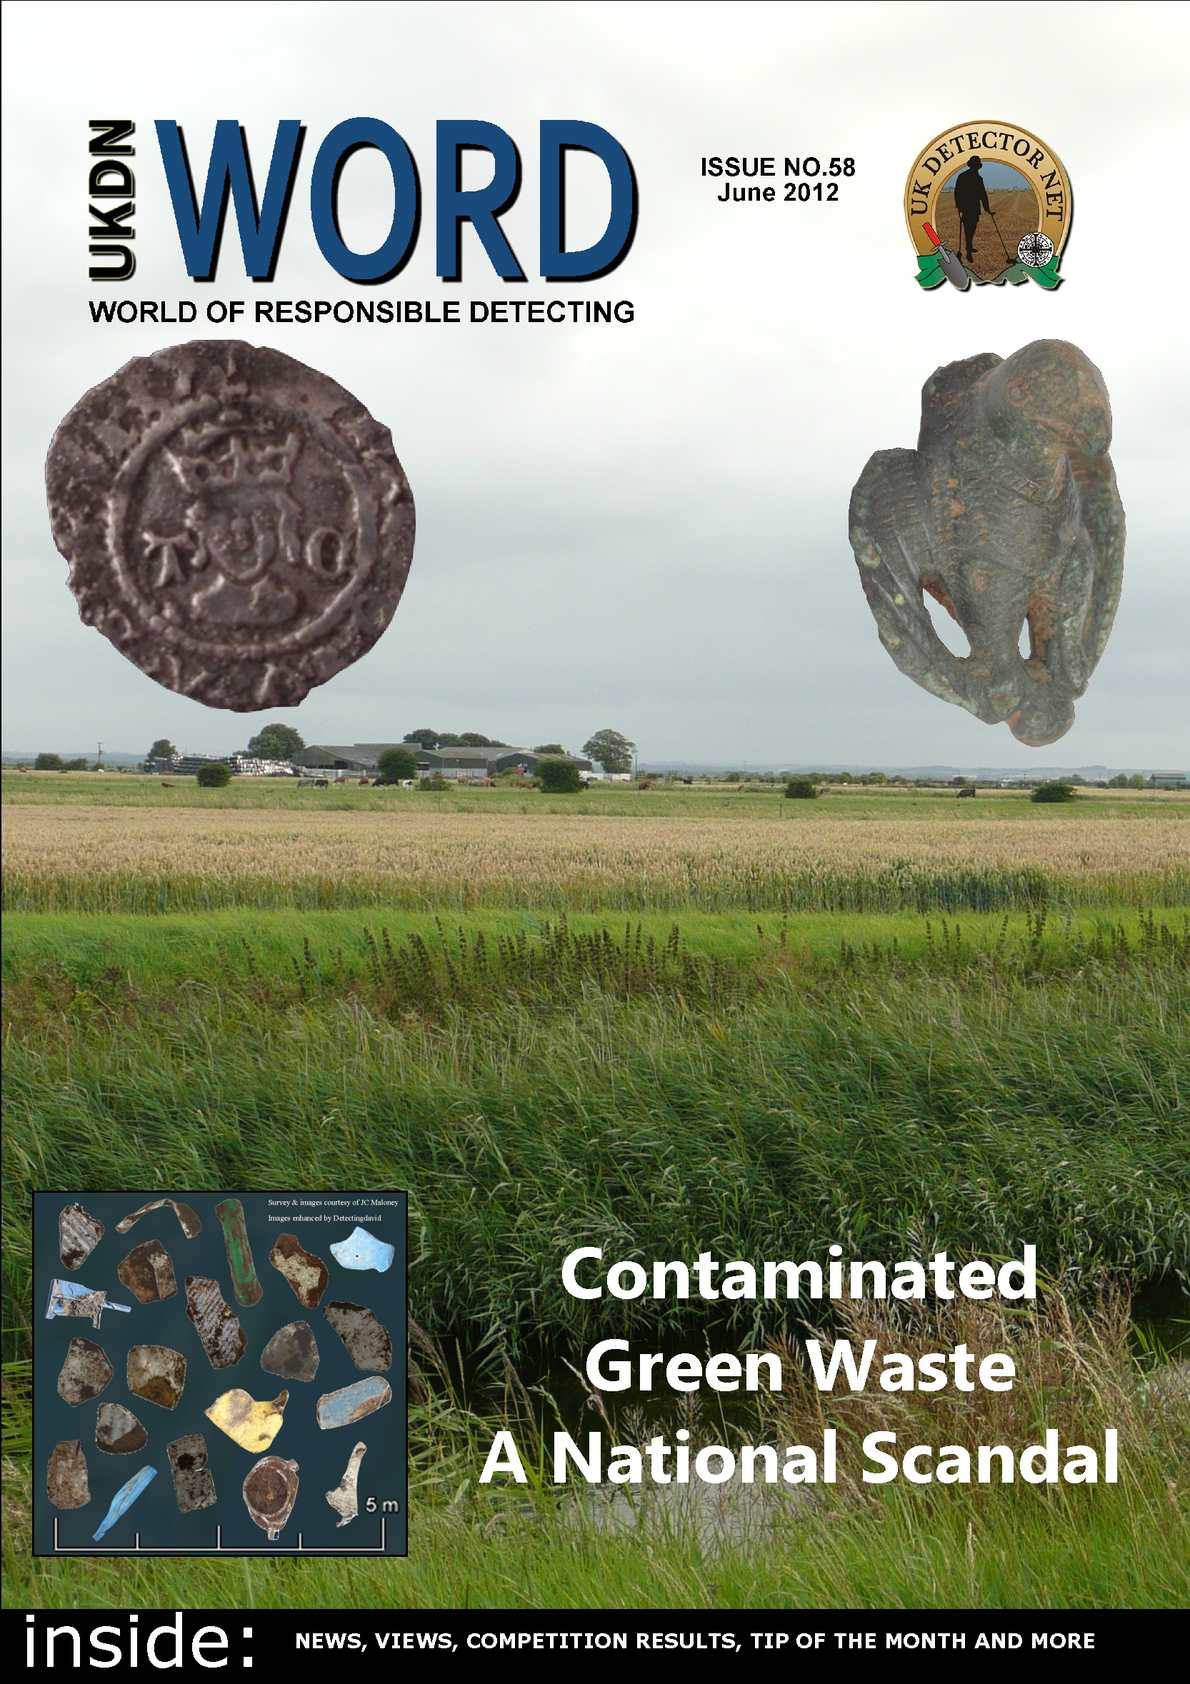 UKDN Word - Issue 58 - June 2012